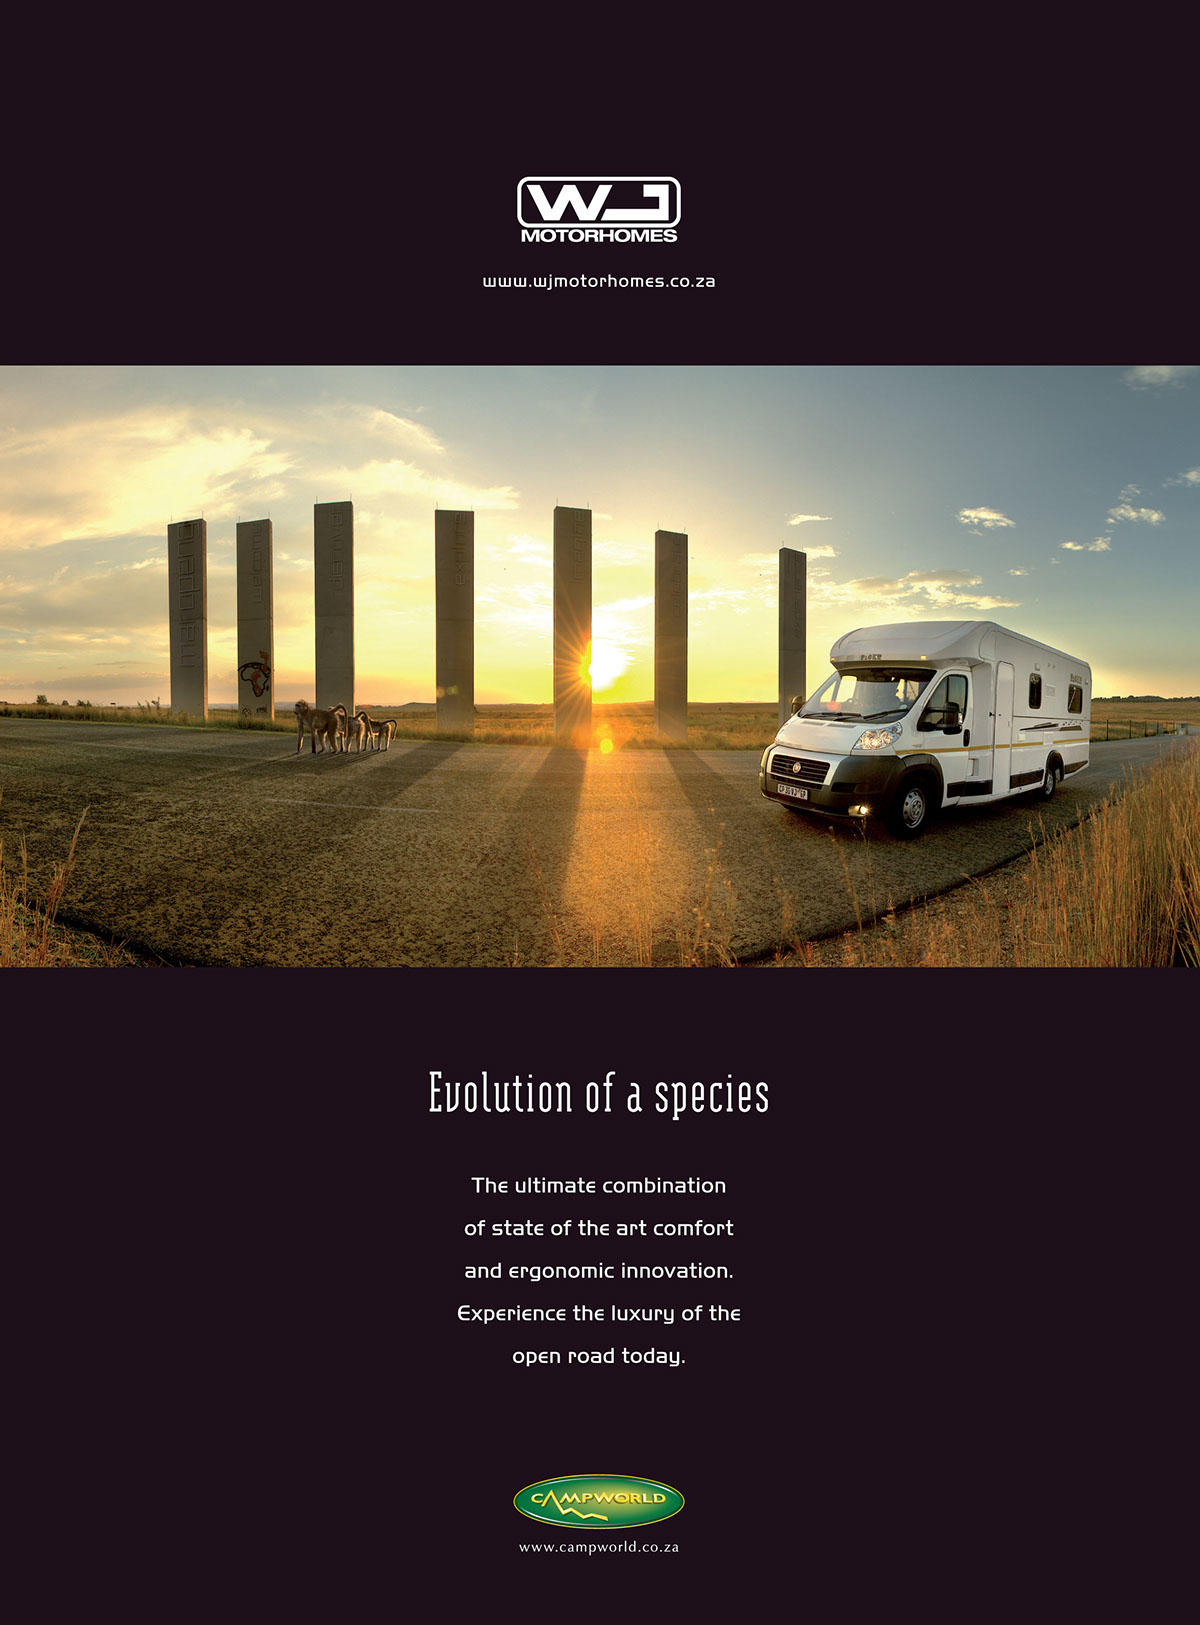 print advertisements on  full page print ad for wj motorhomes responsible for client service concept art direction copywriting photography photo manipulation and print